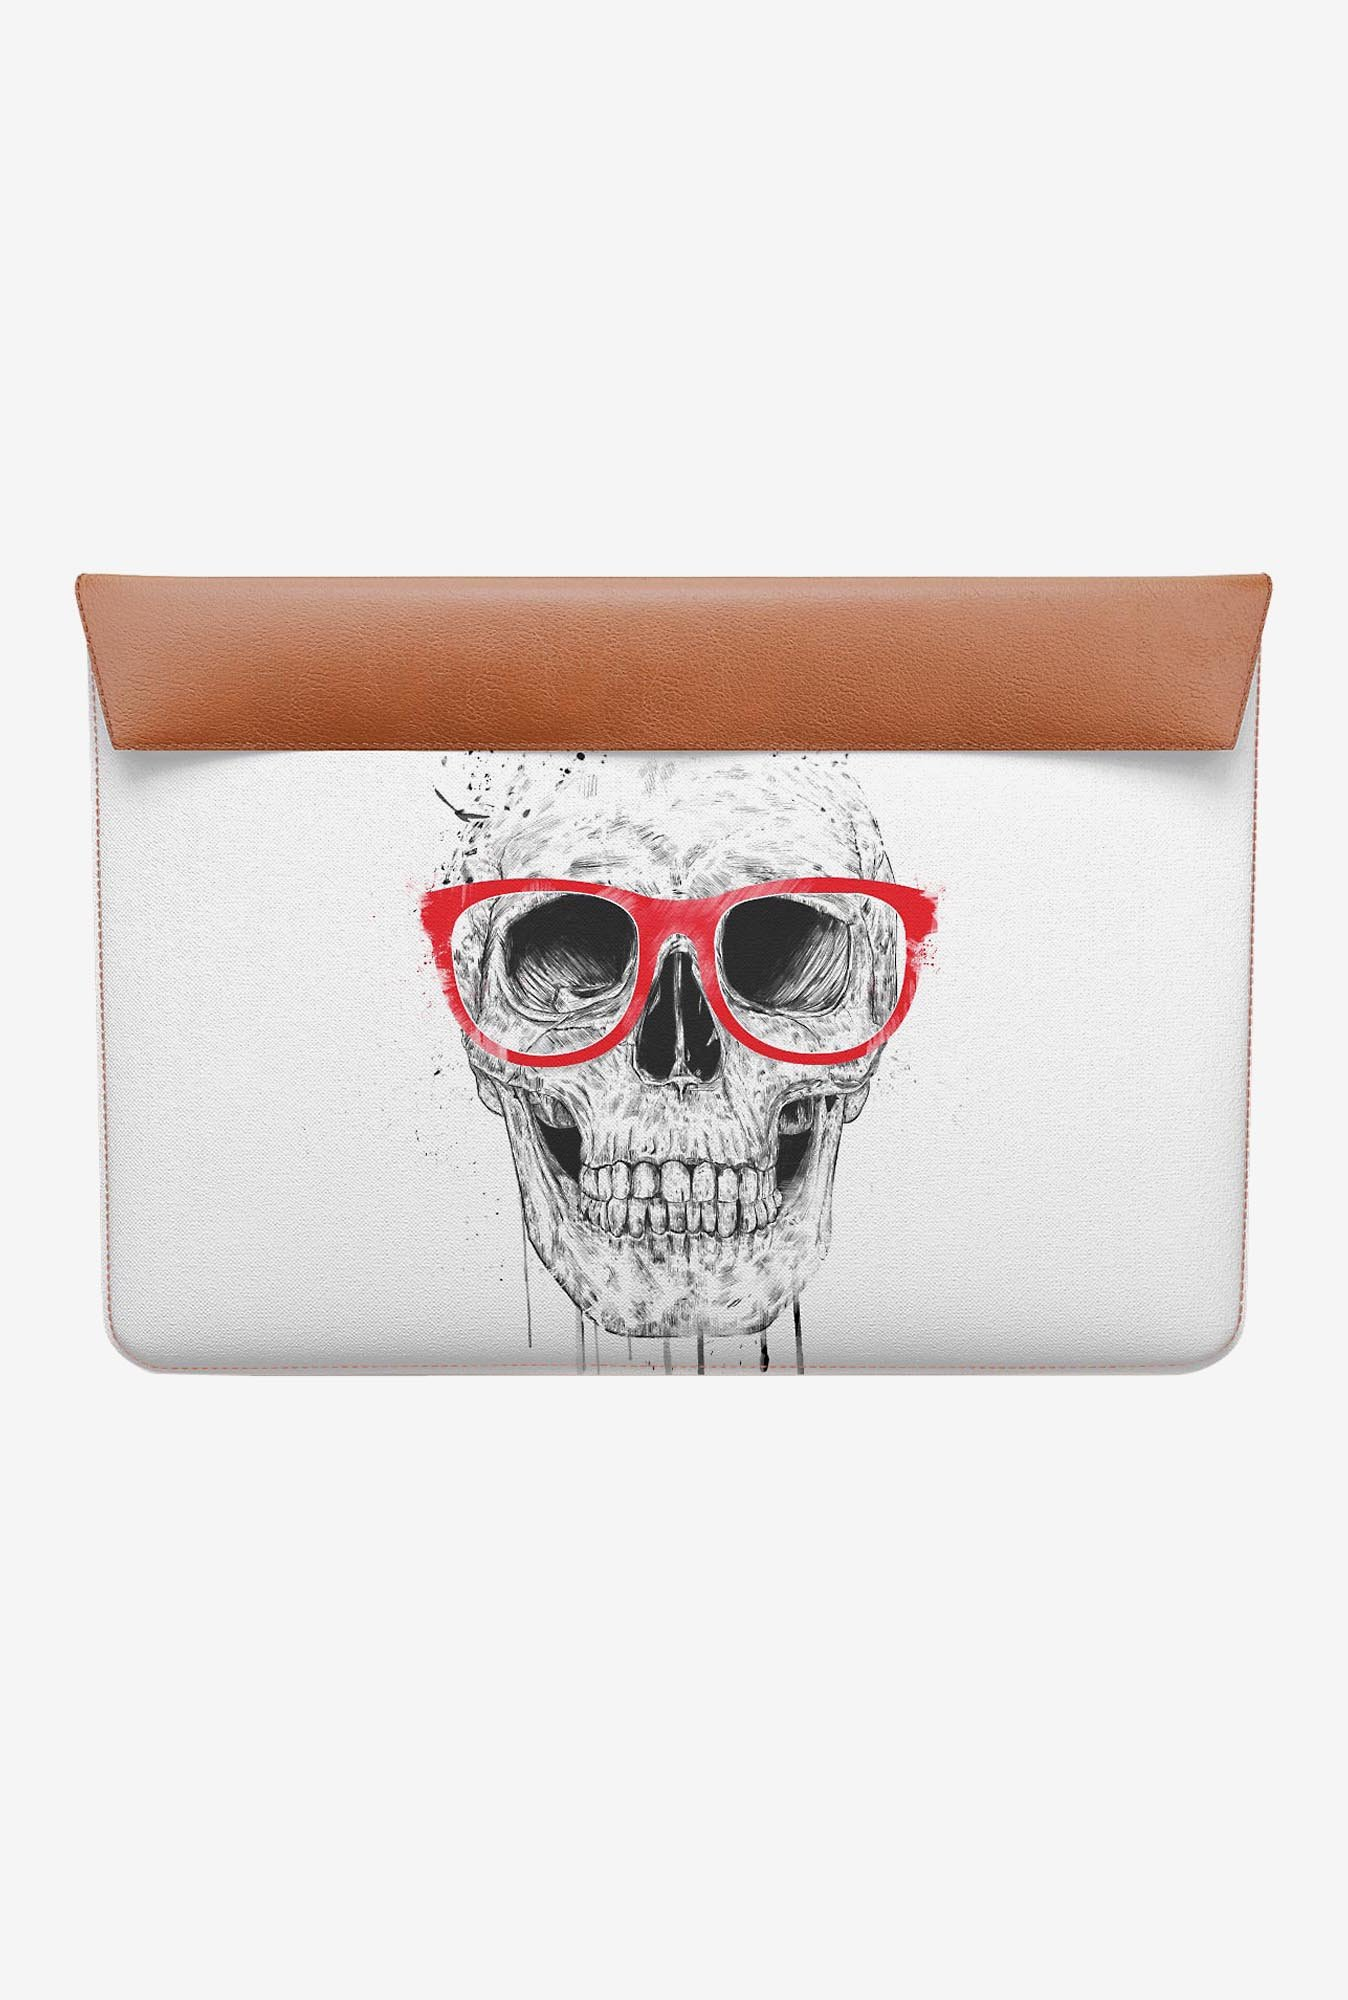 DailyObjects Skull Red Glass MacBook Air 13 Envelope Sleeve